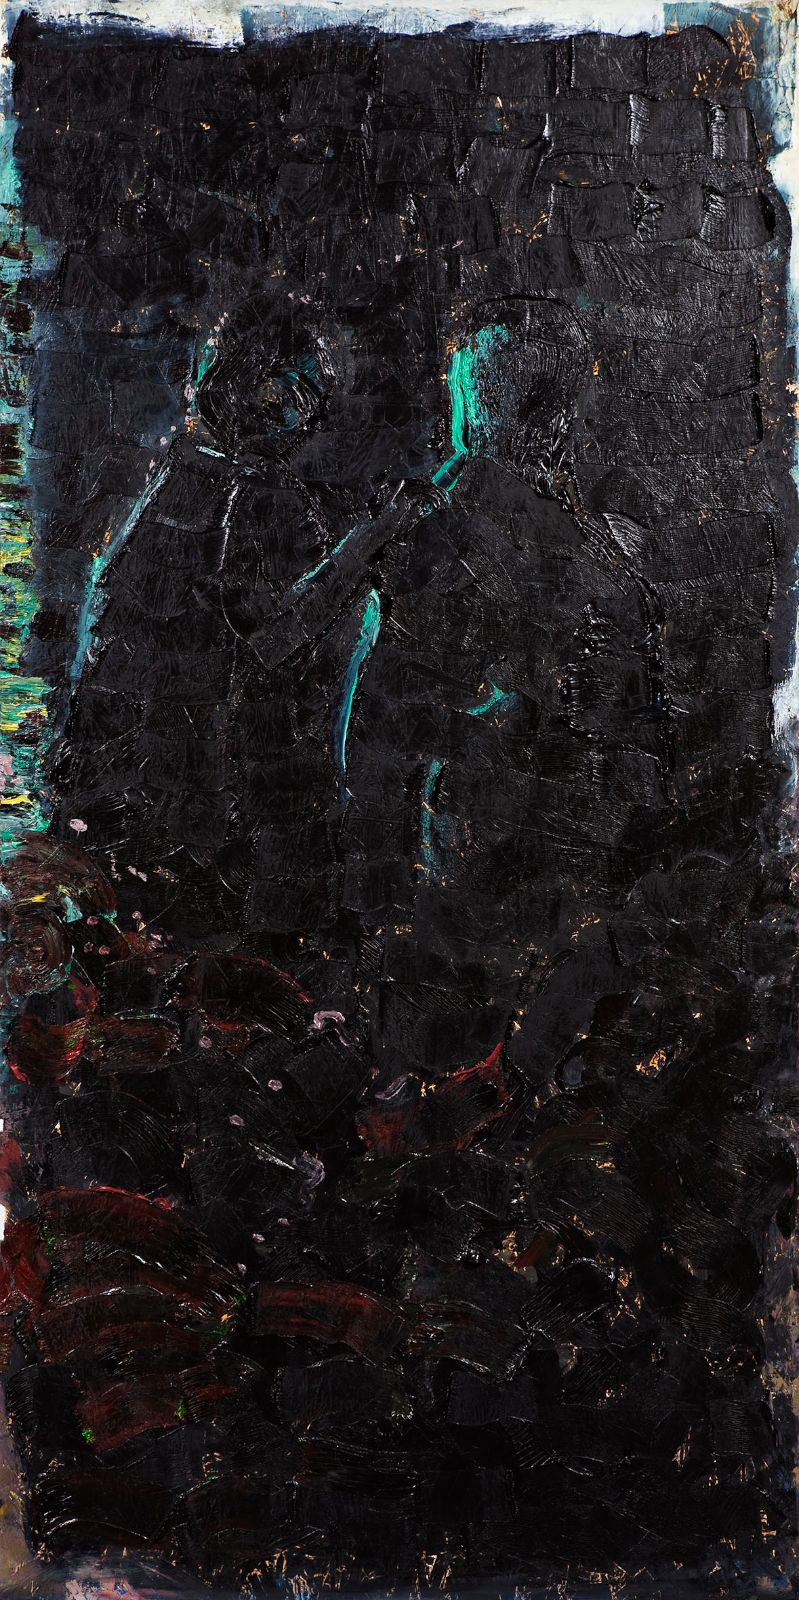 The End, 2009, oil on panel, 244 x 122 cm